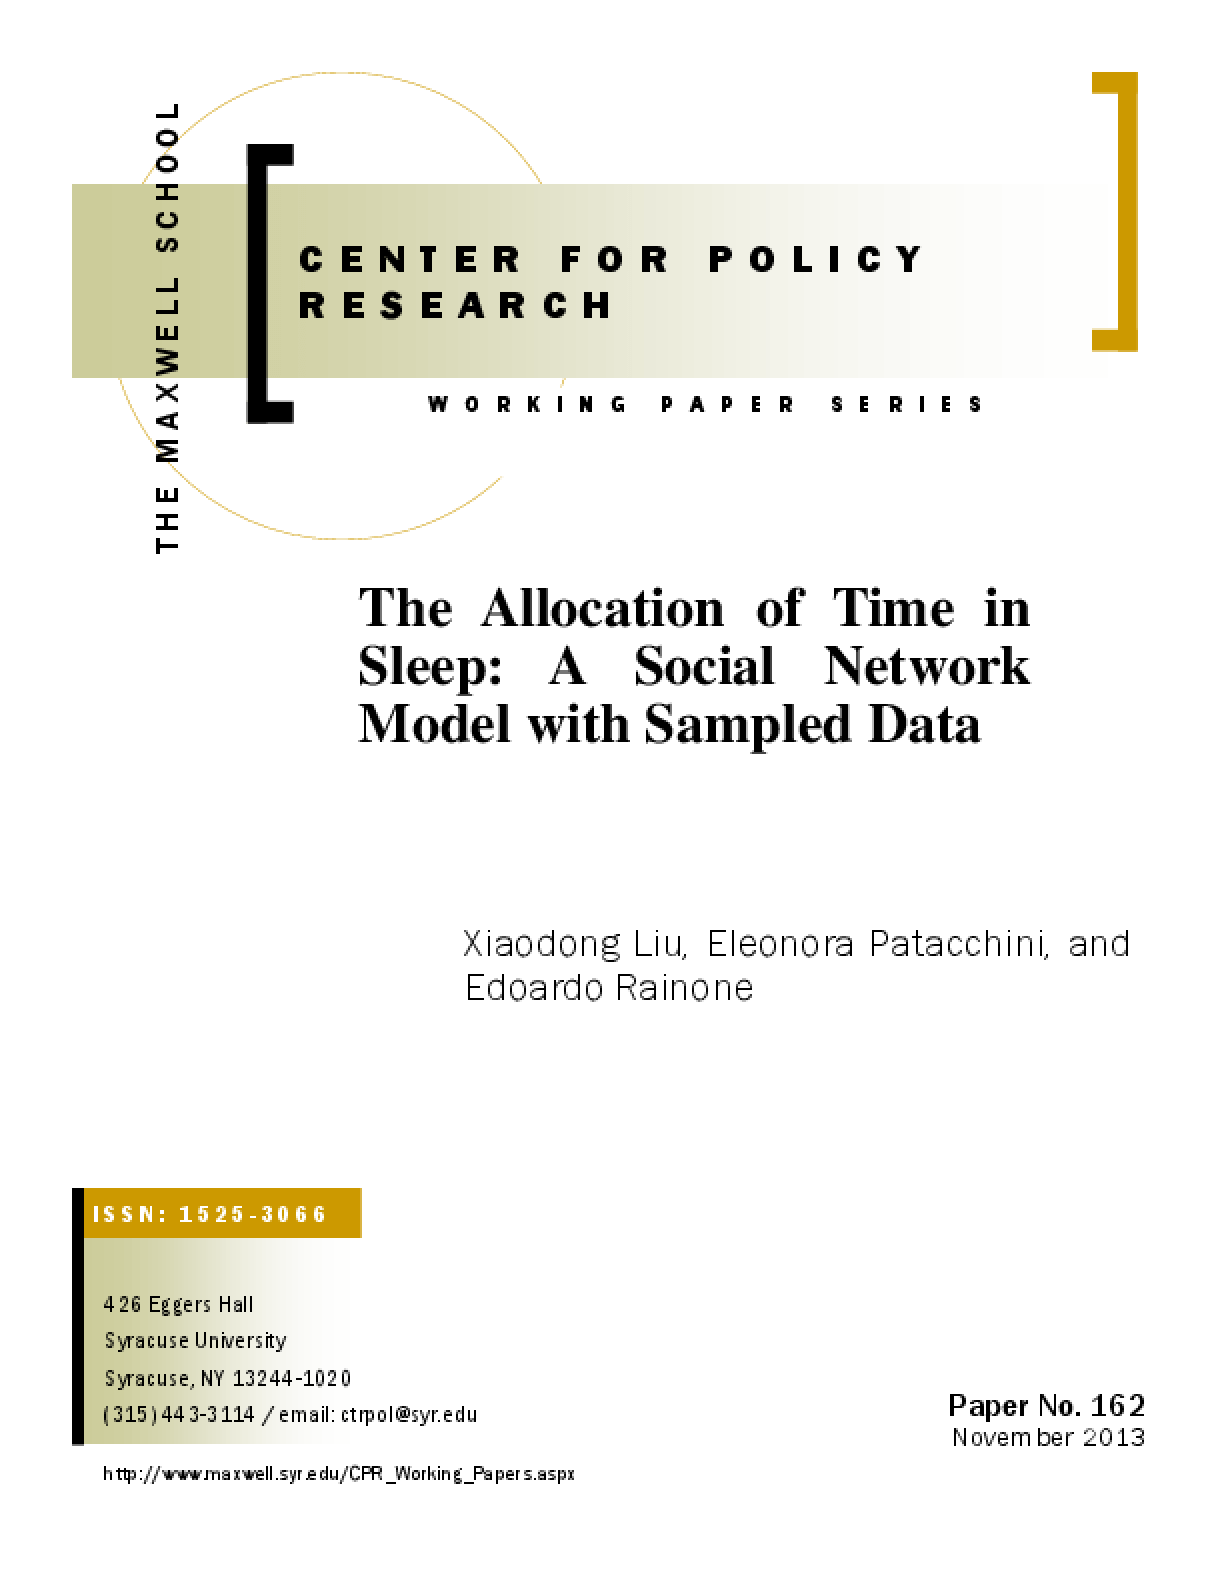 The Allocation of Time in Sleep: A Social Network Model with Sampled Data